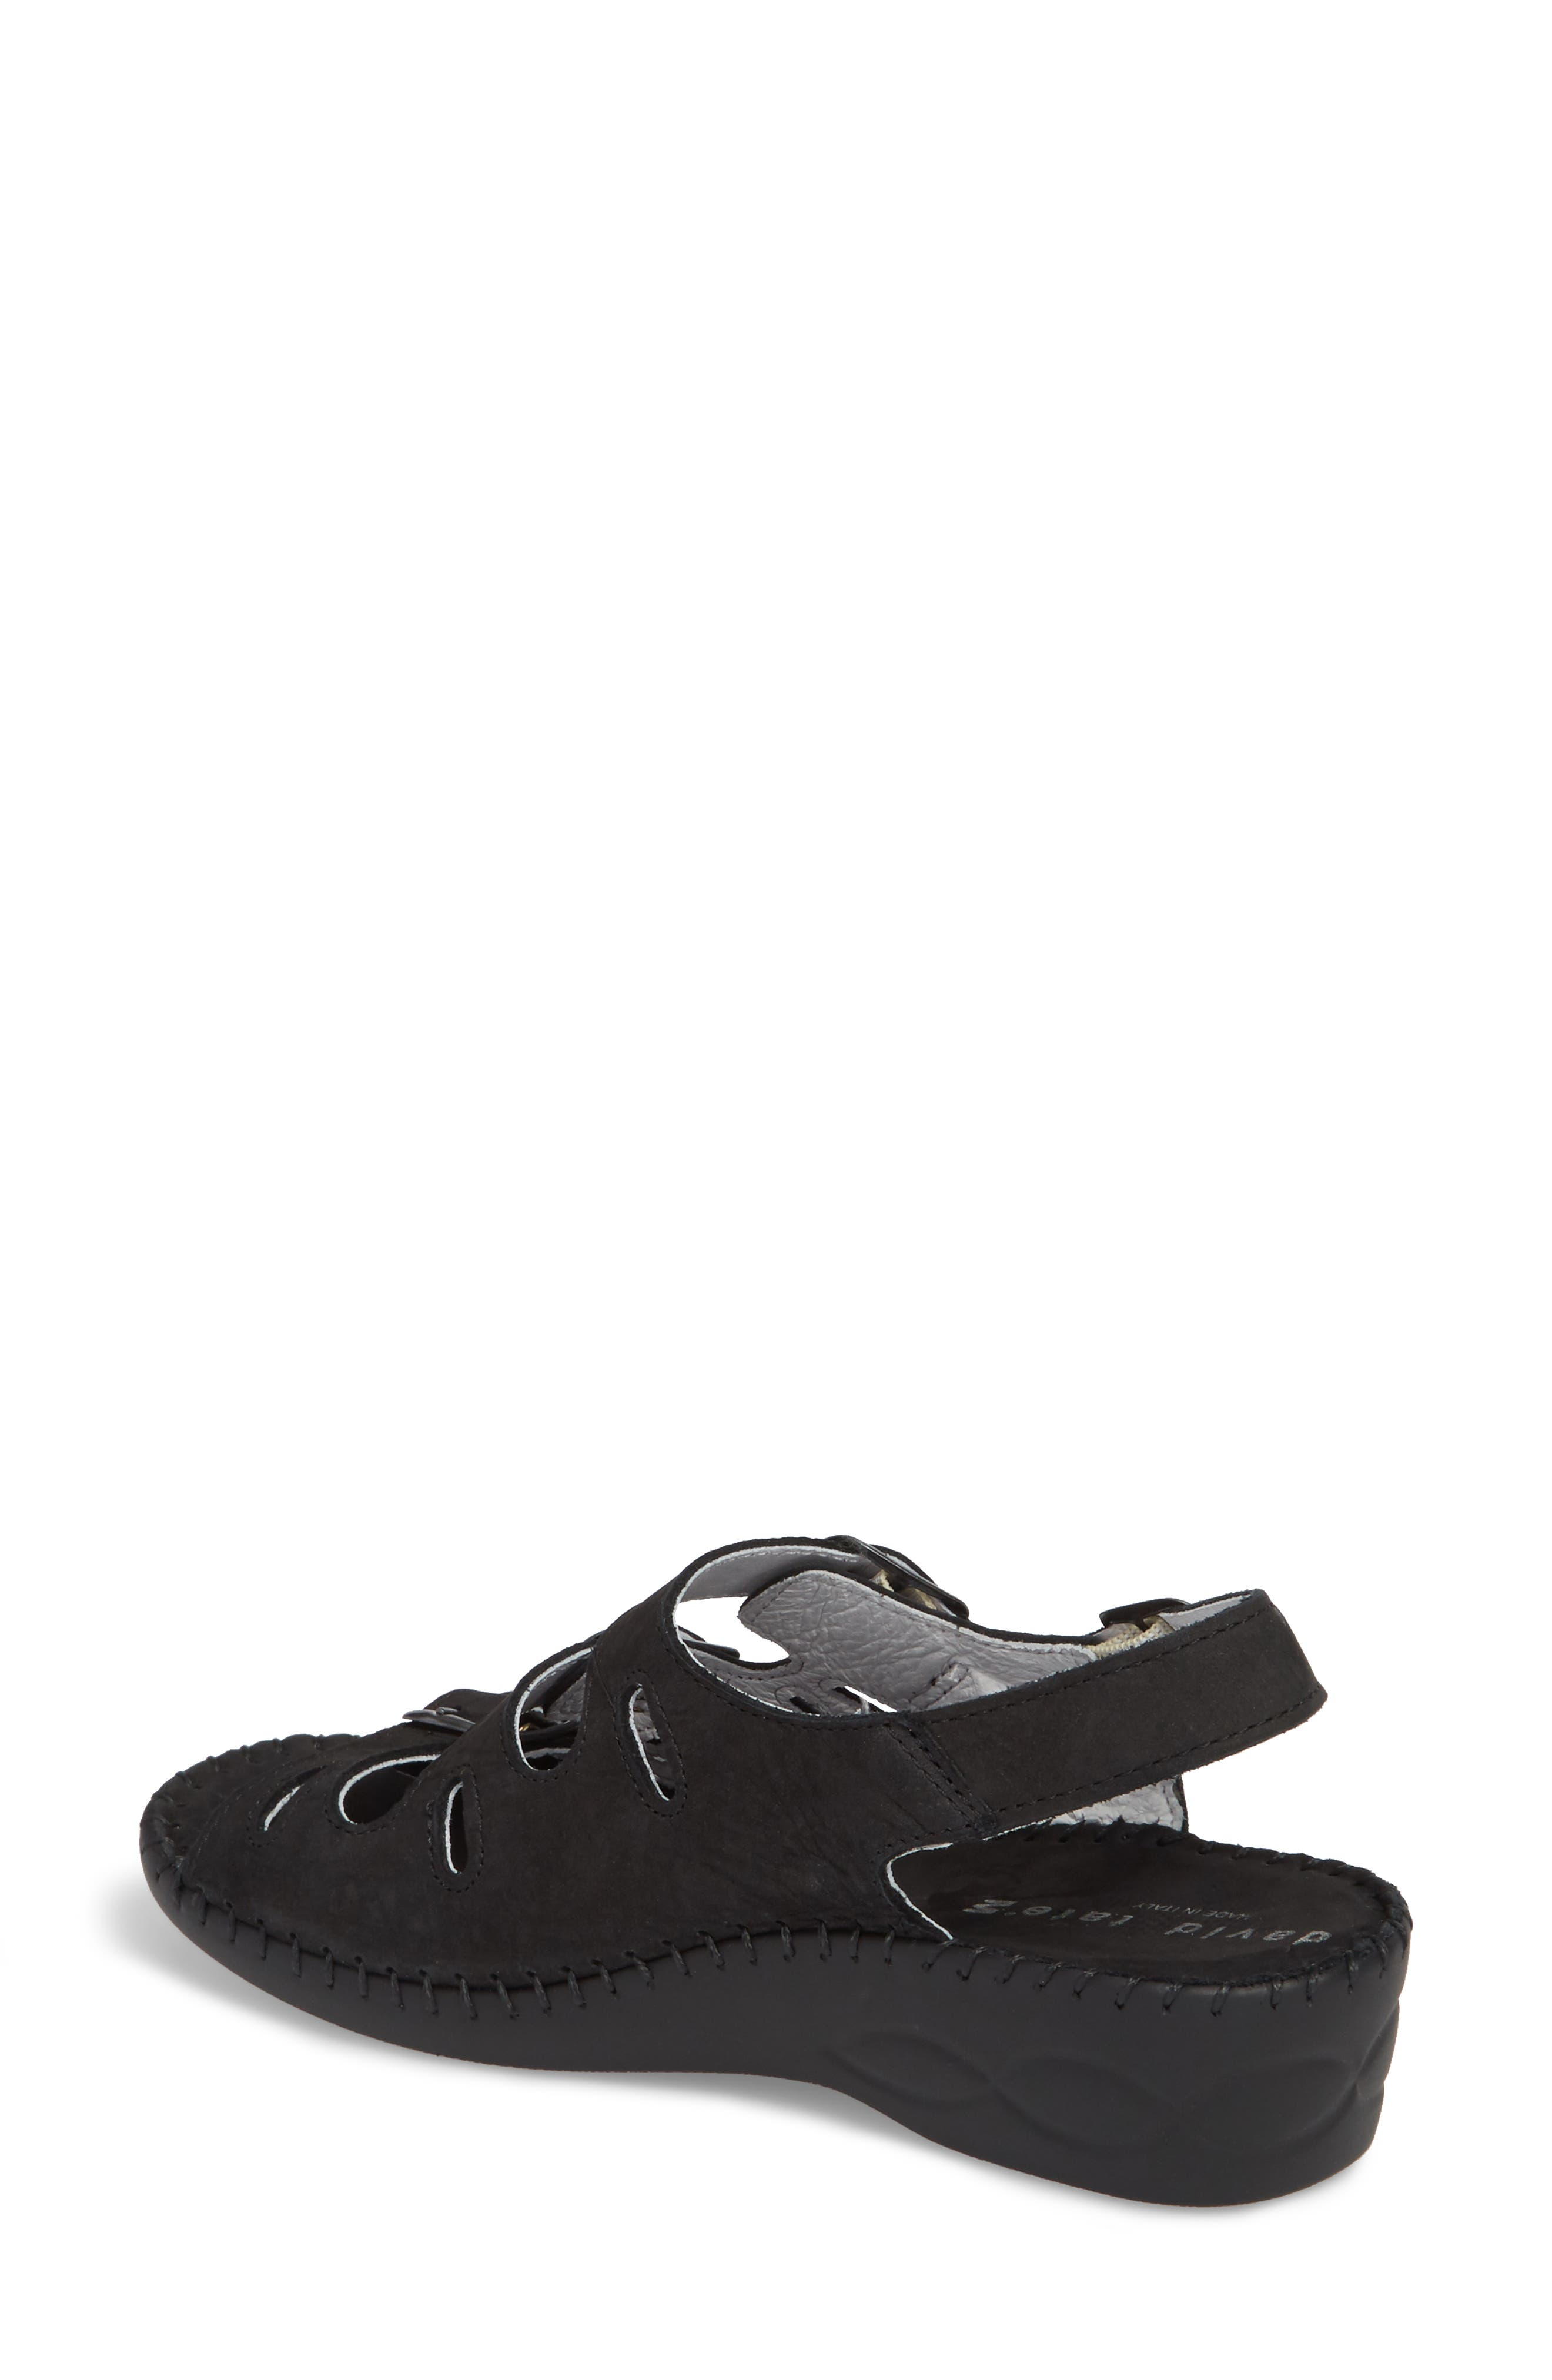 DAVID TATE, Luna Slingback Wedge Sandal, Alternate thumbnail 2, color, BLACK NUBUCK